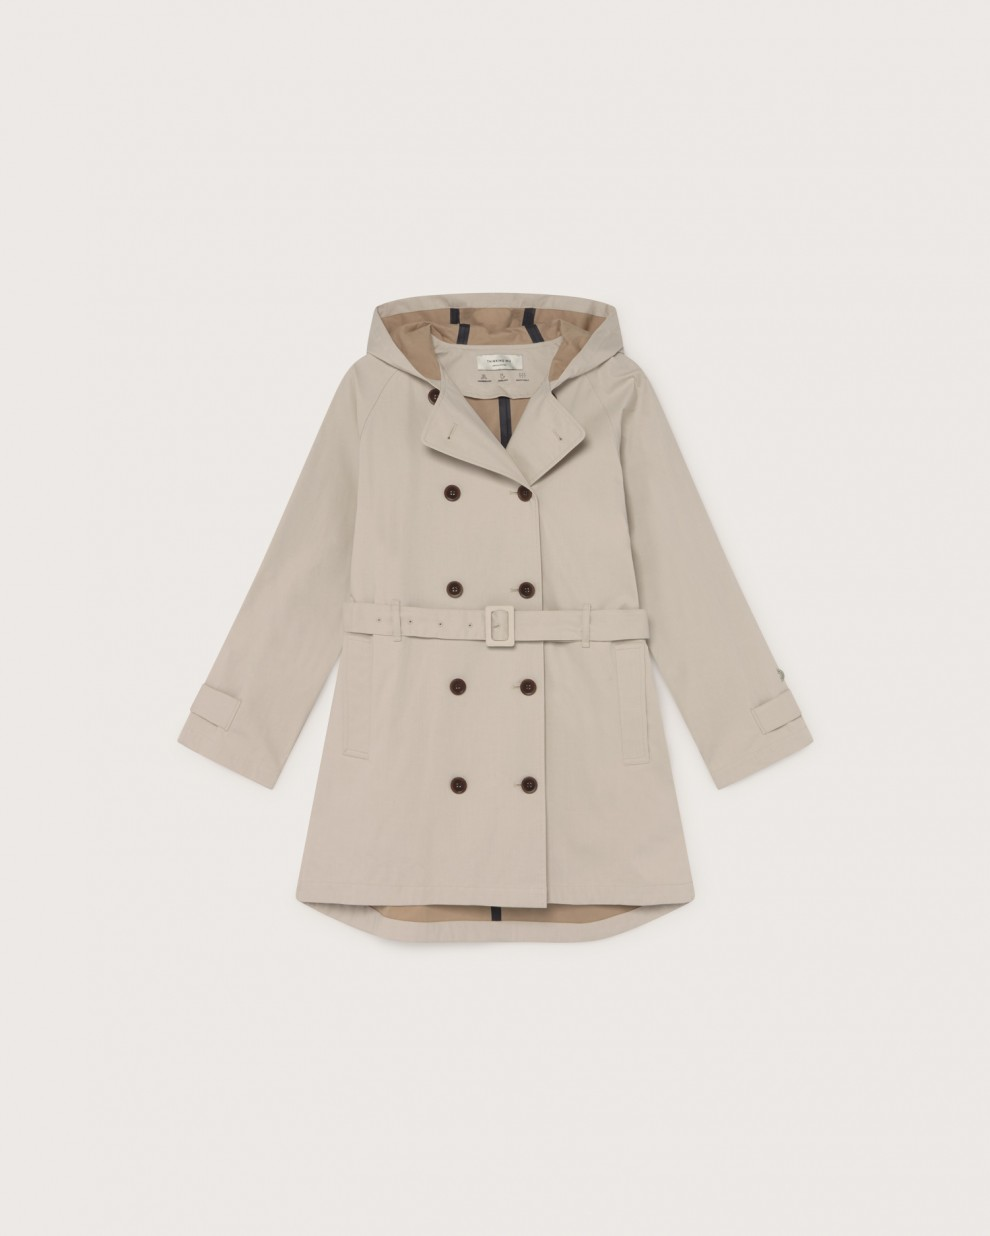 SAND VAAL TRENCH RAINCOAT